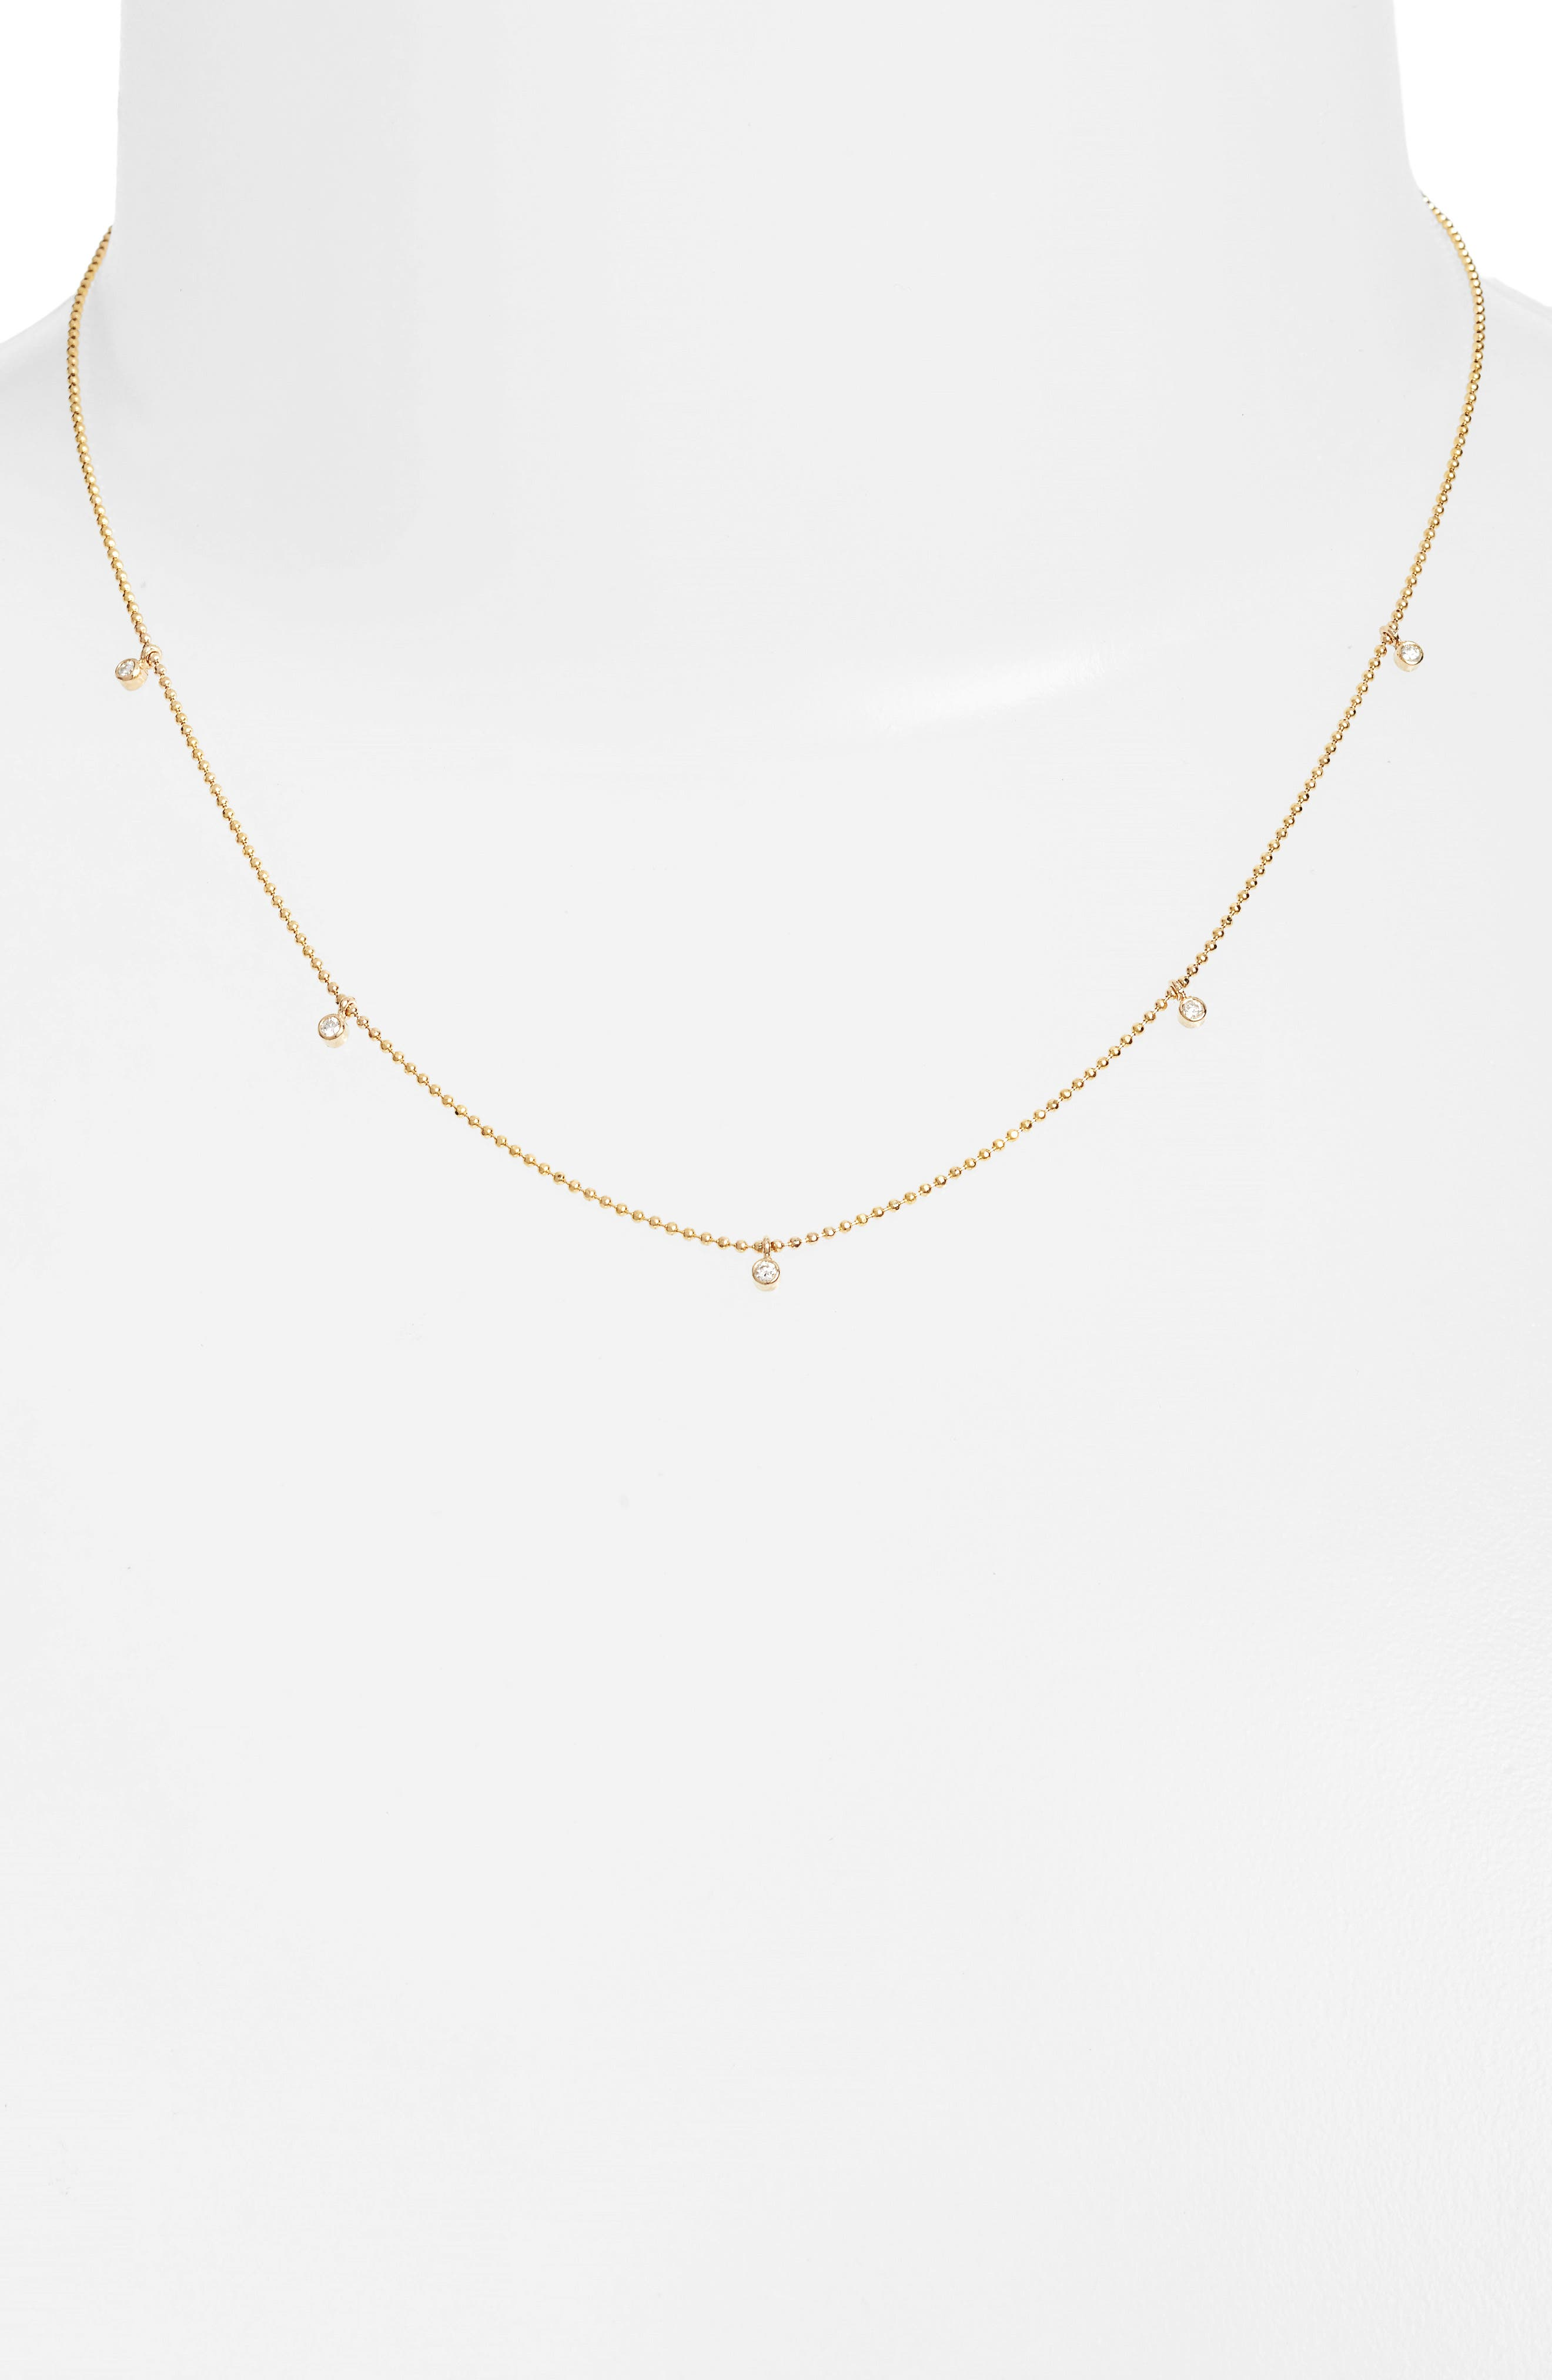 ZOË CHICCO Diamond Charm Necklace